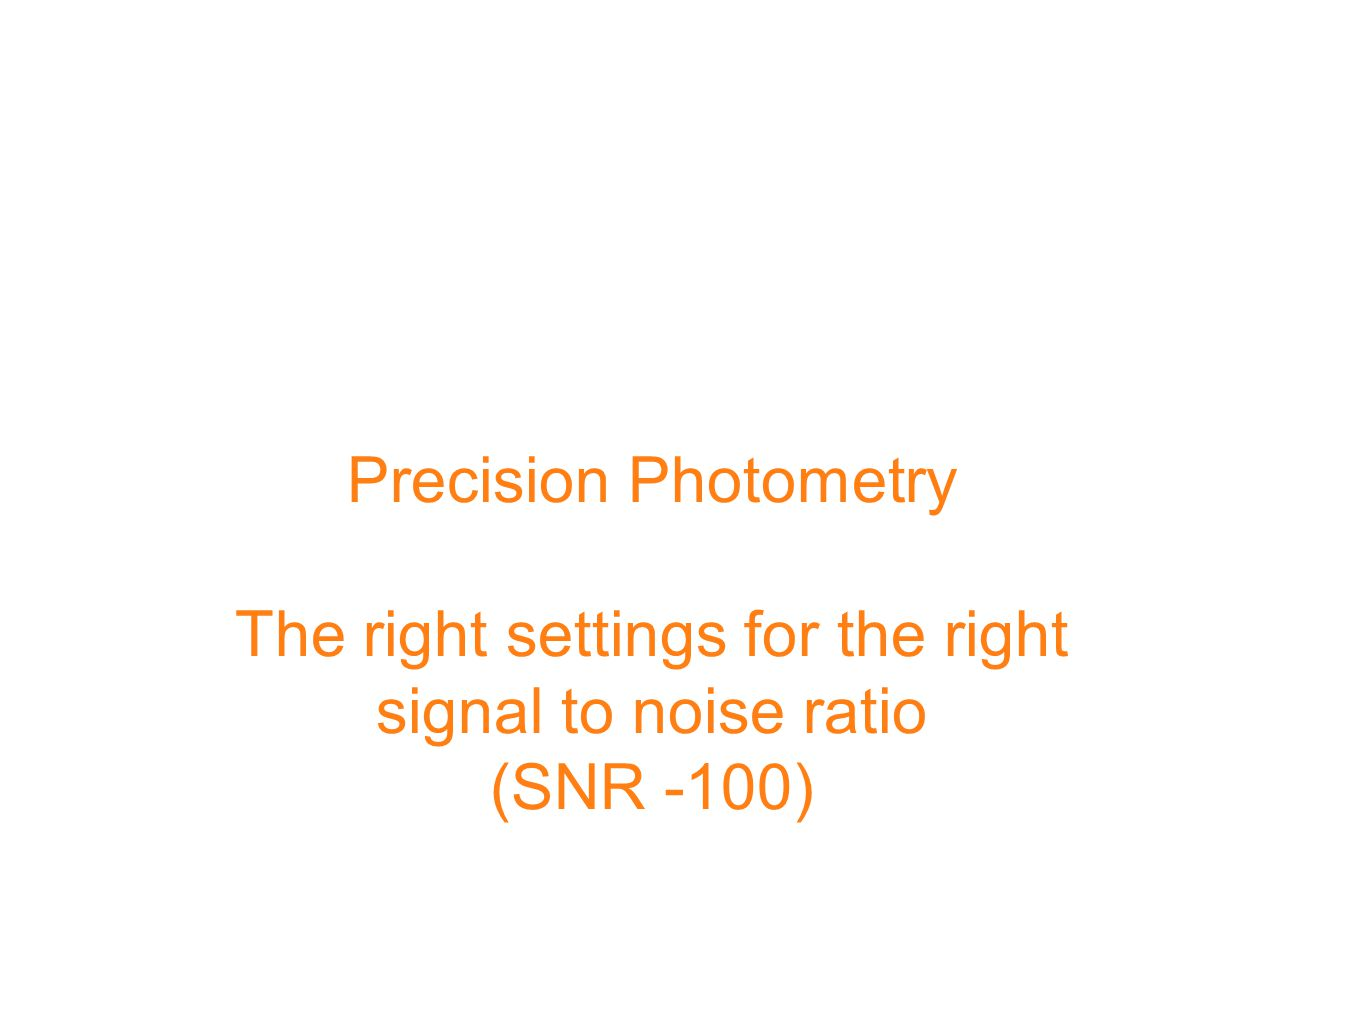 Precision Photometry The right settings for the right signal to noise ratio (SNR -100)